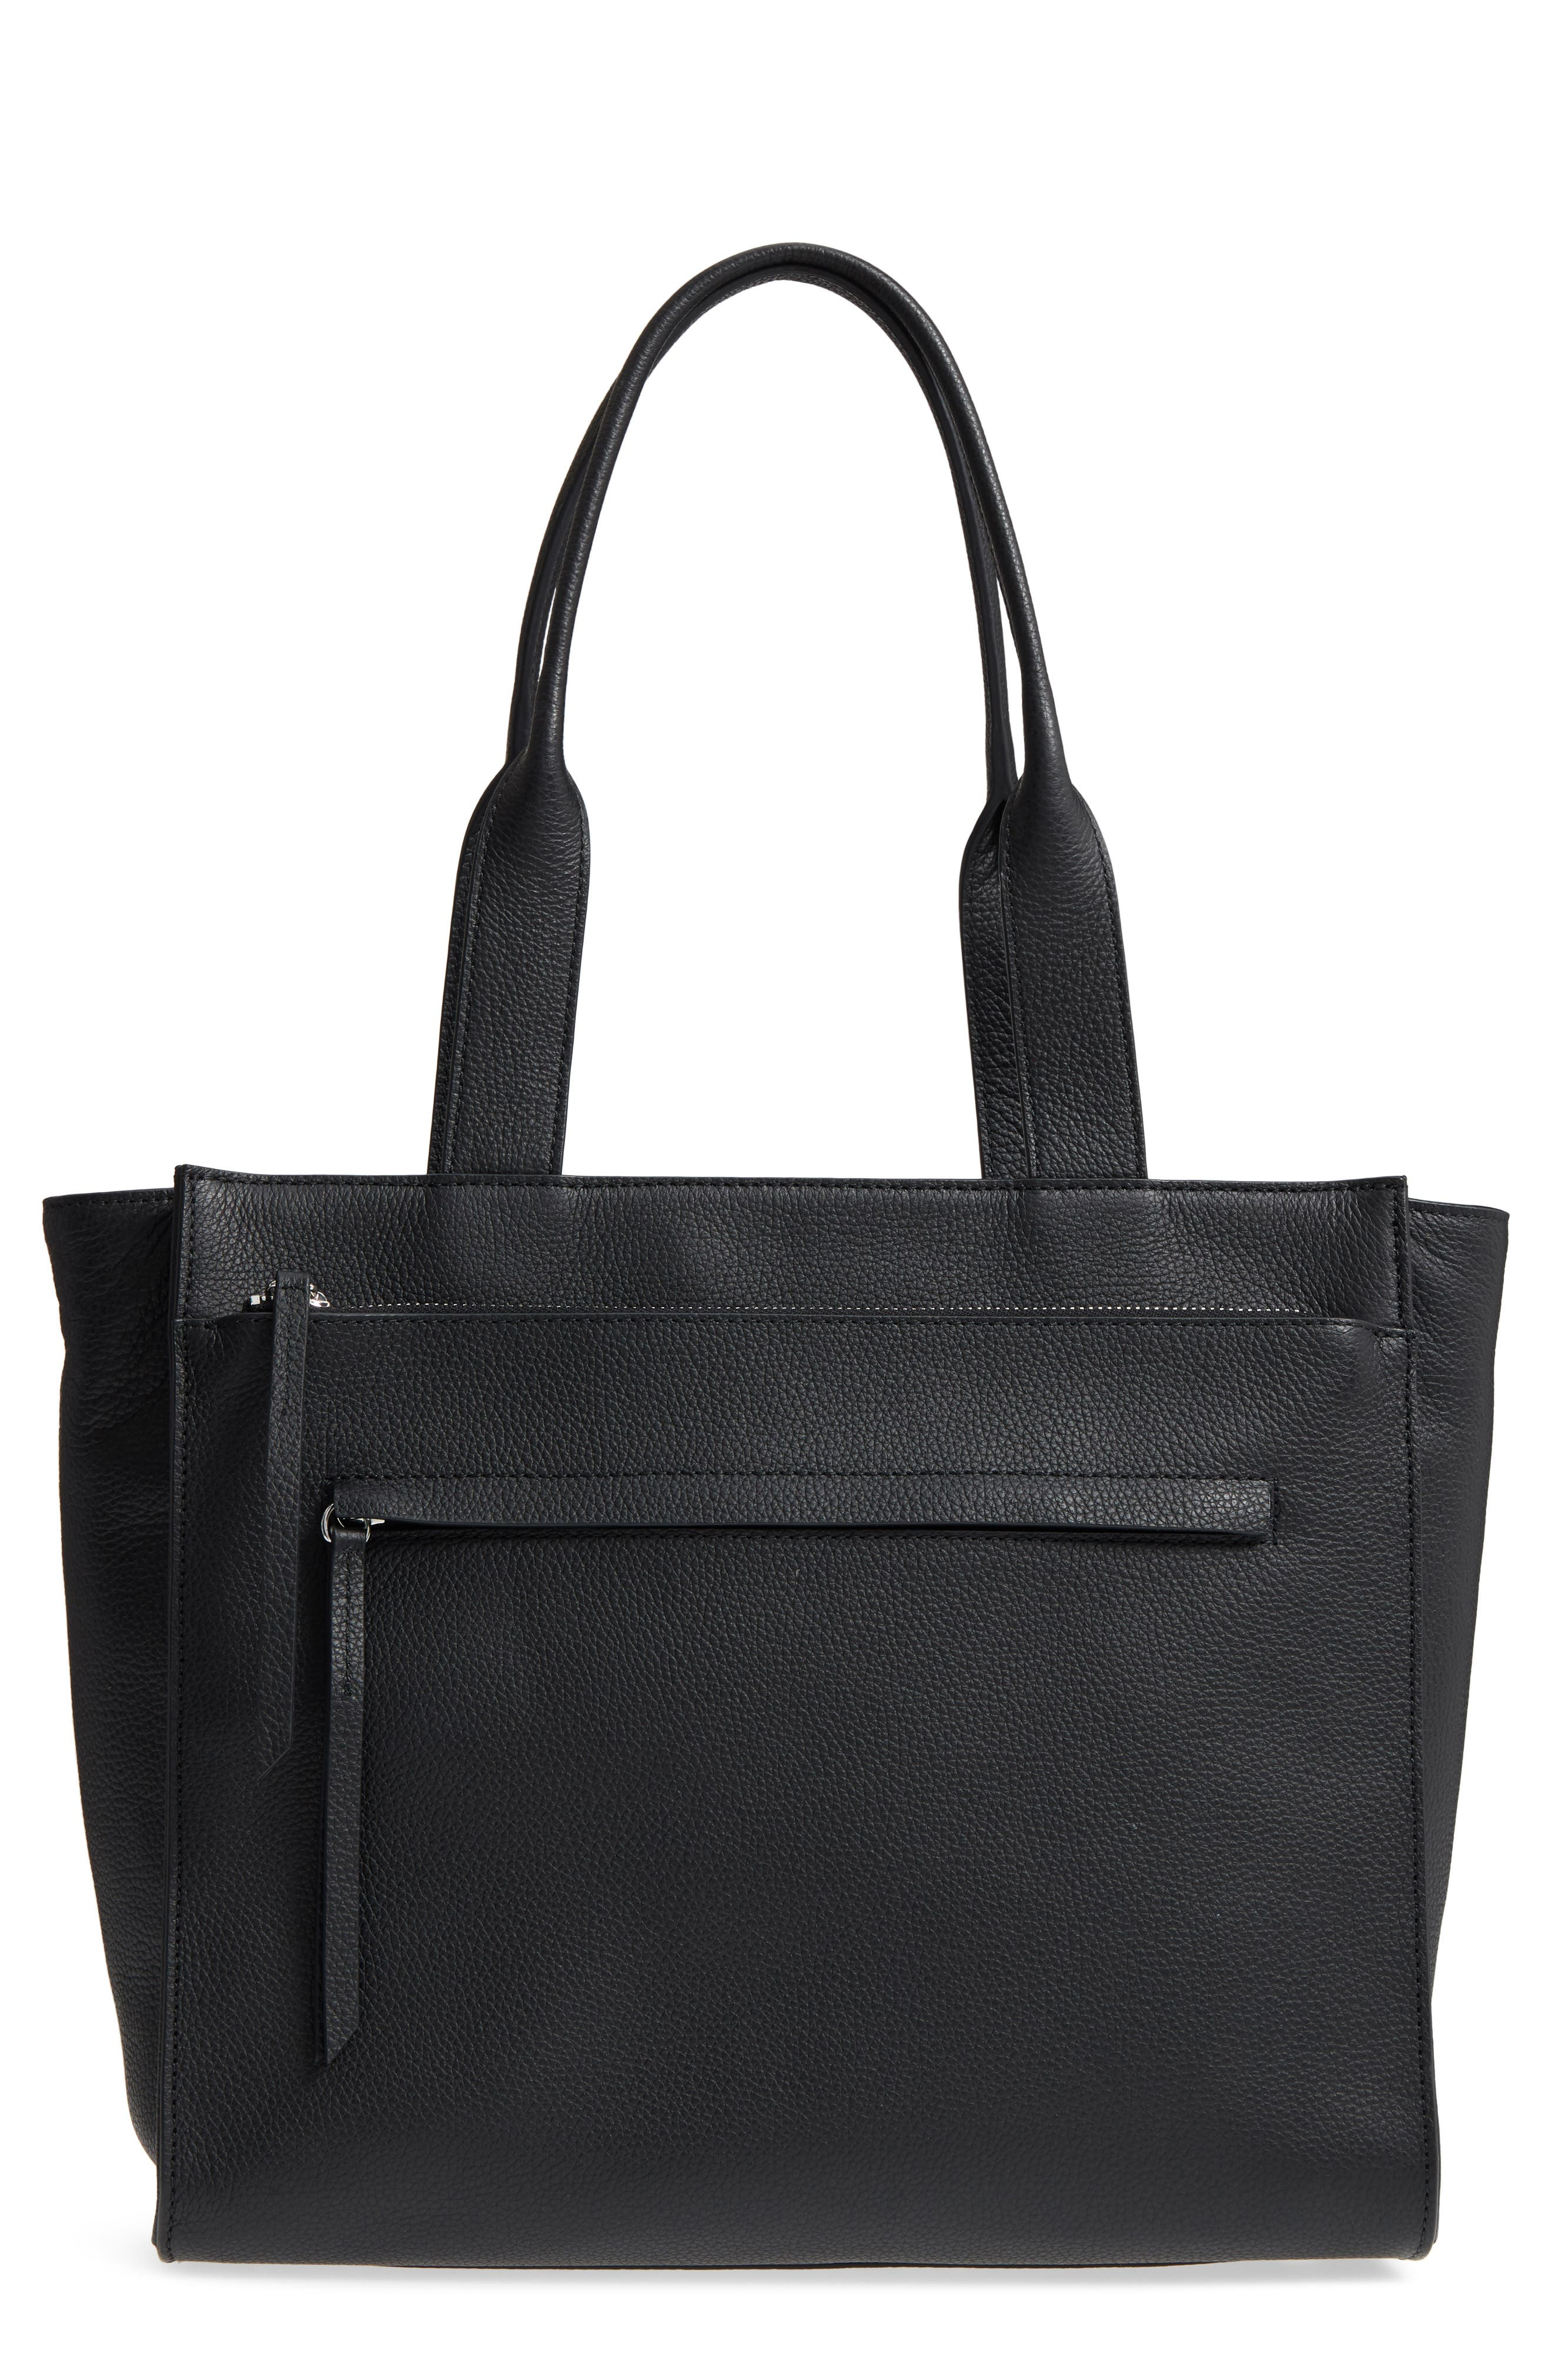 14e5442d293 Tote Bags for Women: Leather, Coated Canvas, & Neoprene | Nordstrom